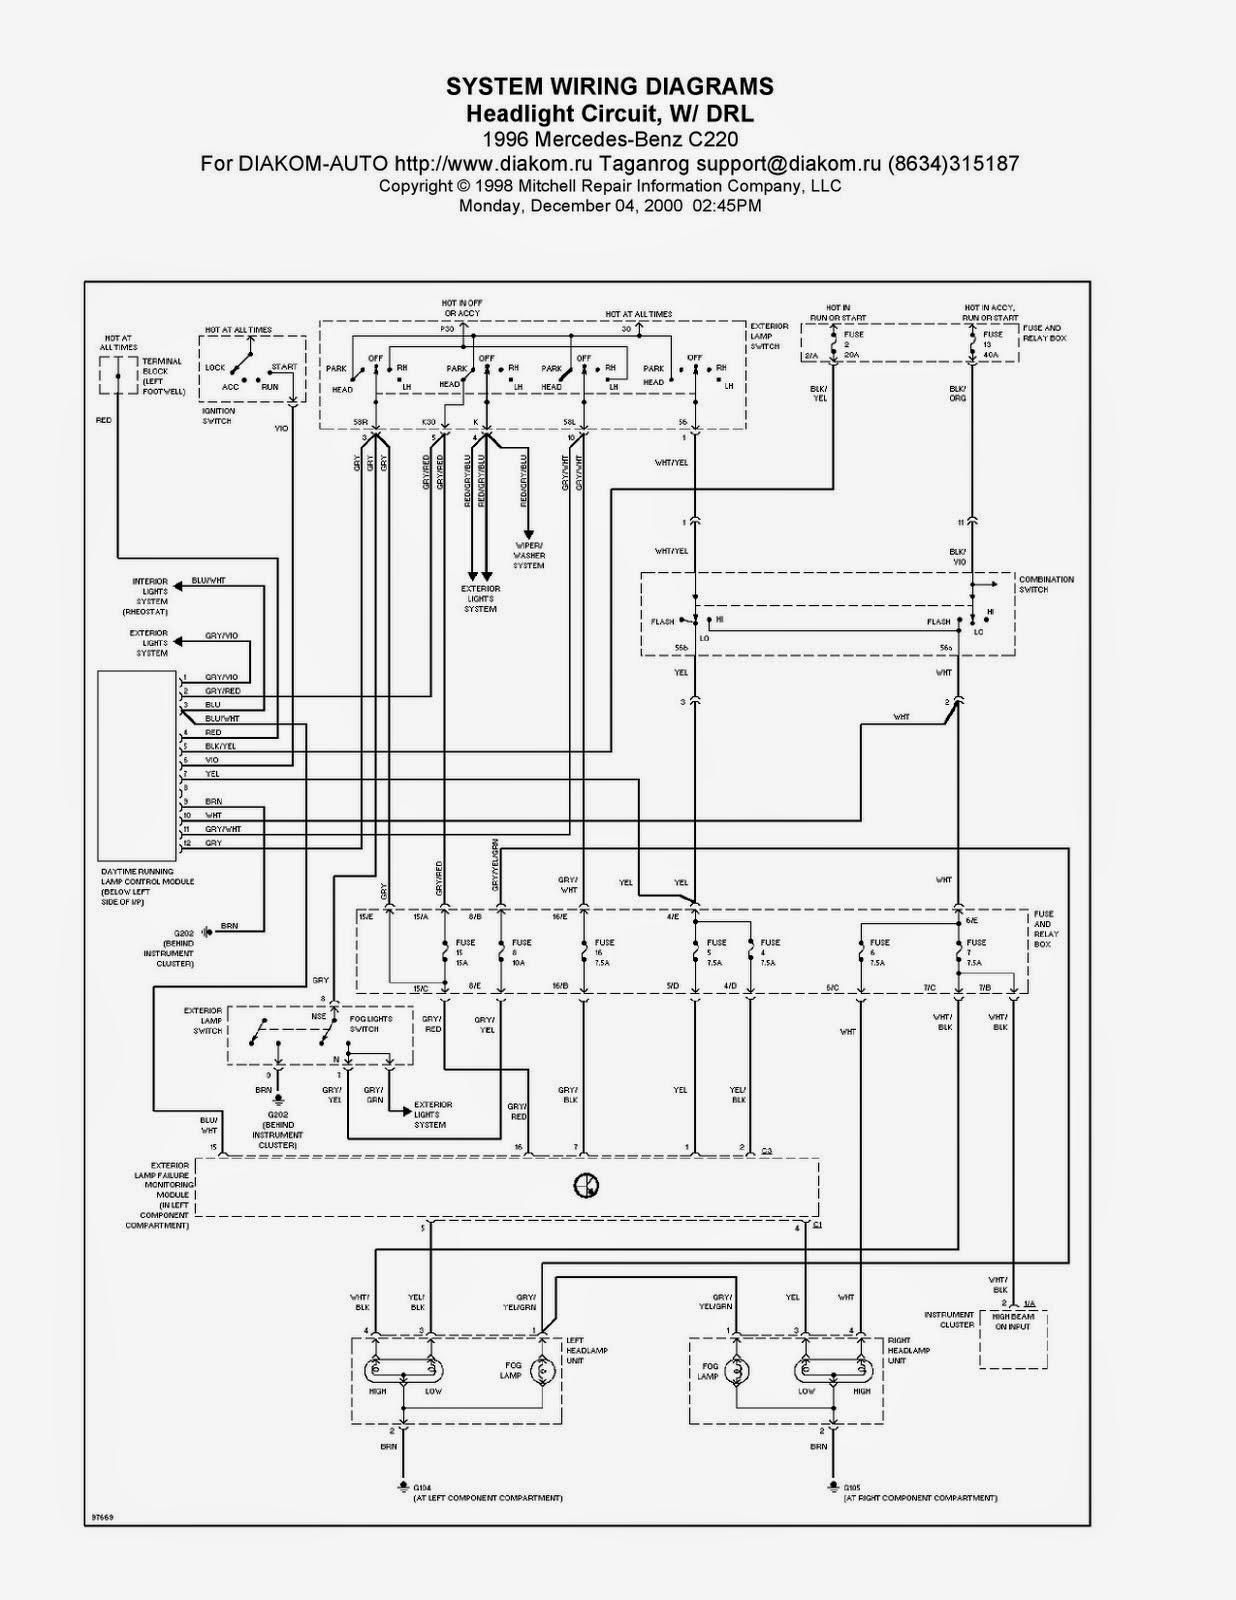 mercedes benz e class wiring diagram 11 6 kenmo lp de \u2022 1968 Mercedes 200D Headlight Wiring mercedes benz schematics wiring diagram rh 29 malibustixx de 2000 mercedes benz wiring diagram mercedes benz radio wiring diagram